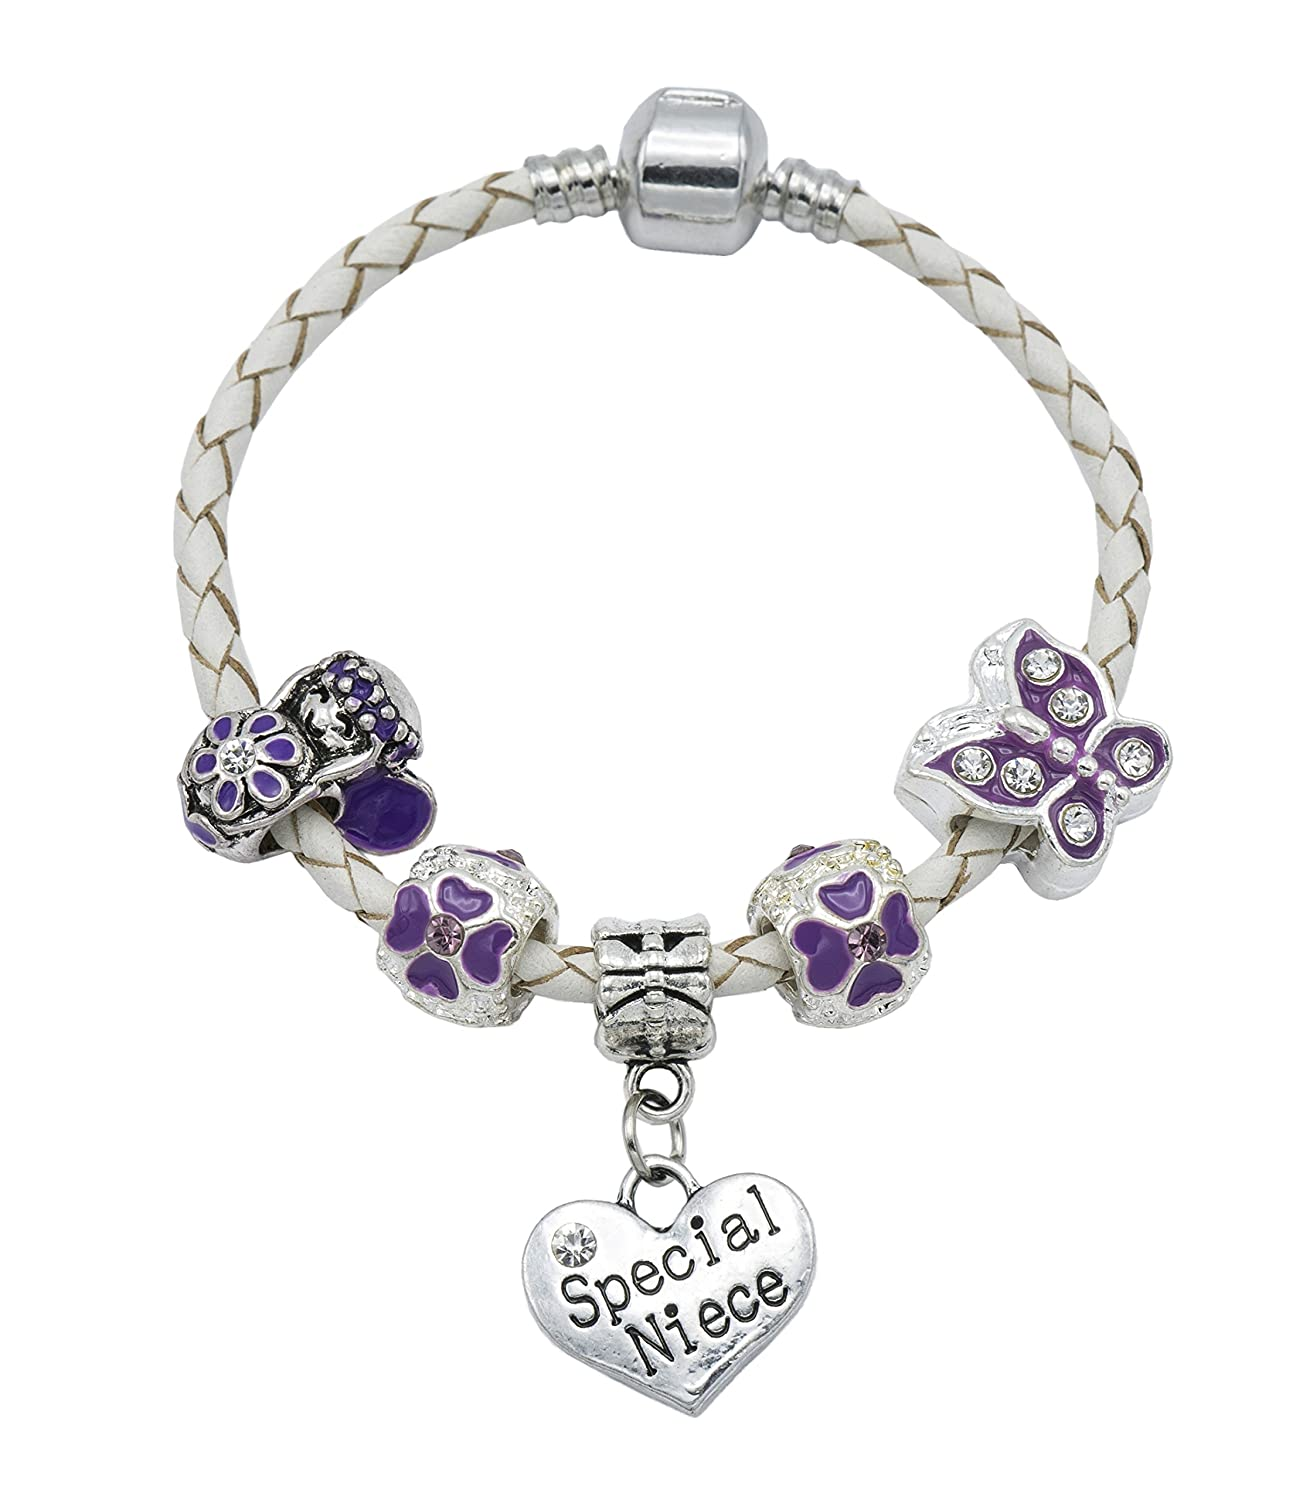 'The Purple Fairy' Special Niece Cream Leather Charm Bracelet for Girls Presented in High Quality Gift Pouch Jewellery Hut BRCRMPFSPECIALNIECE